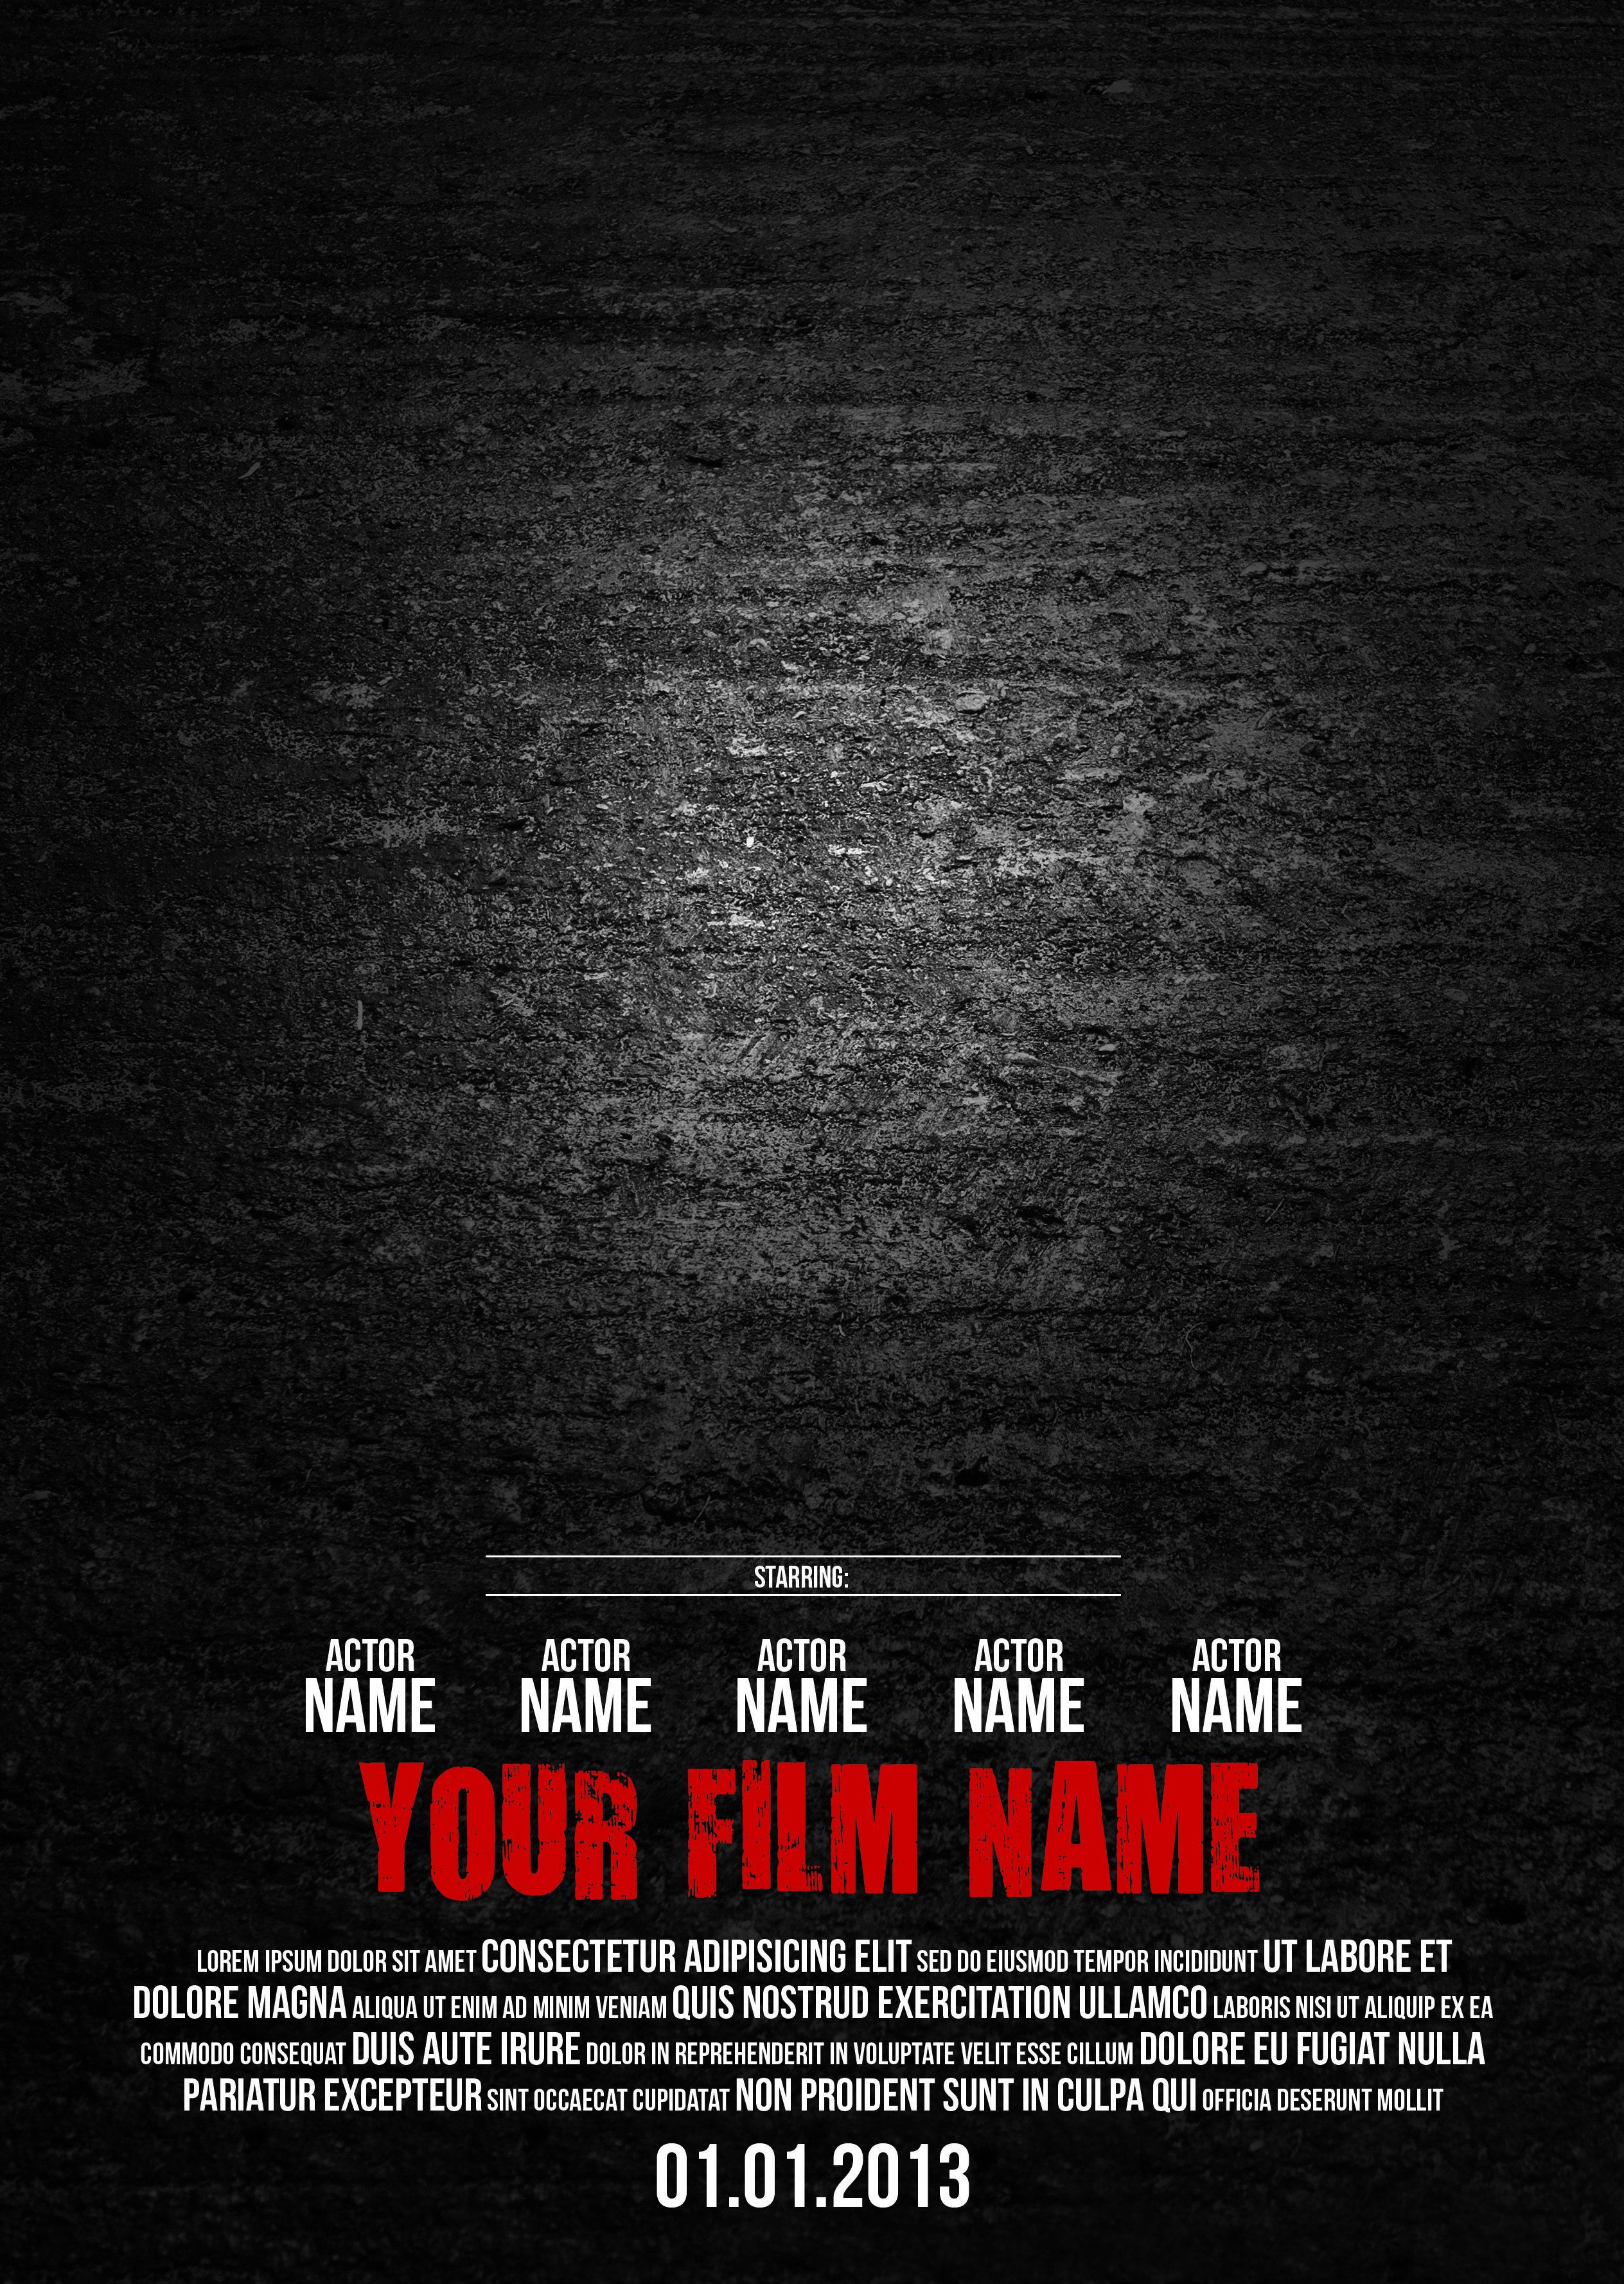 Coming Soon Movie Poster Template : www.galleryhip.com - The Hippest ...